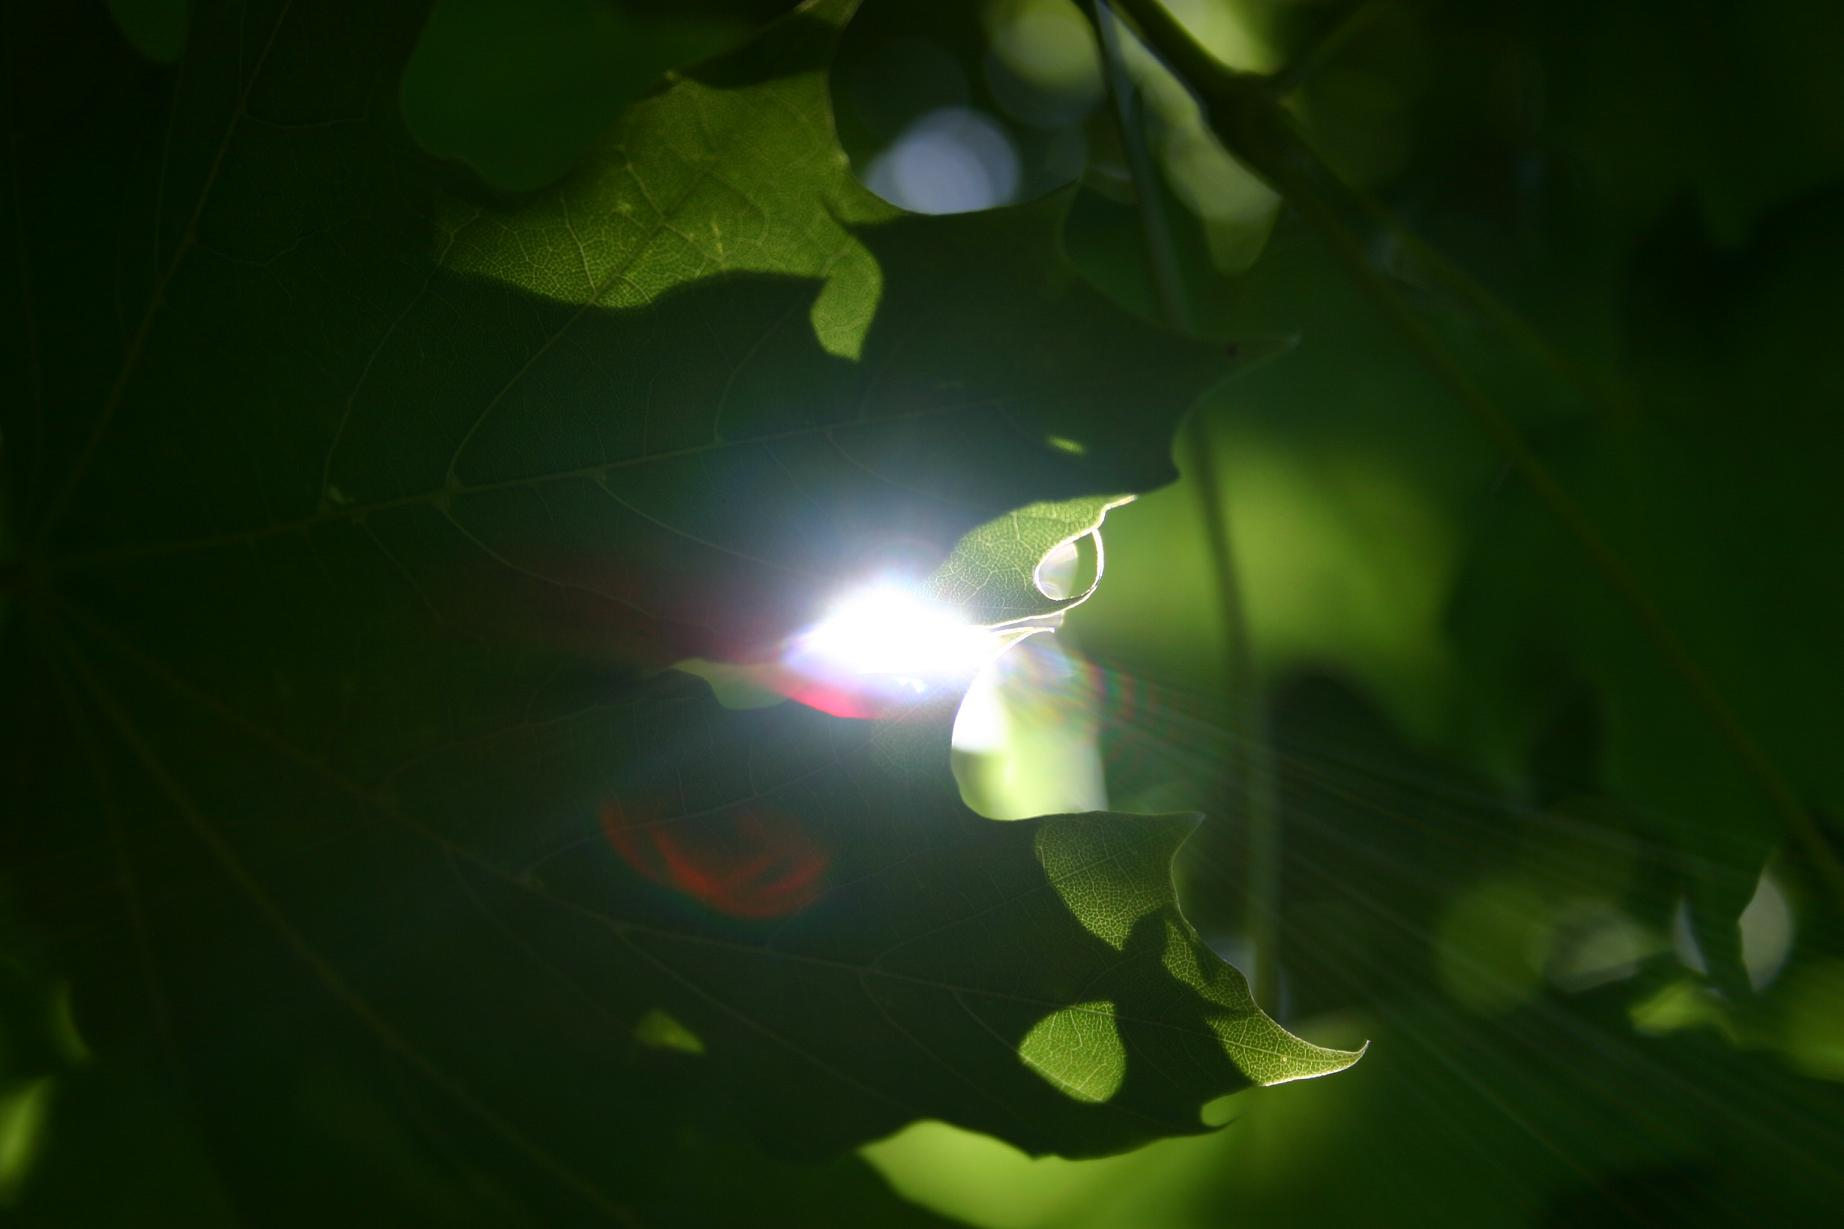 Light through leaves,  photo by Mark A.  Harrison